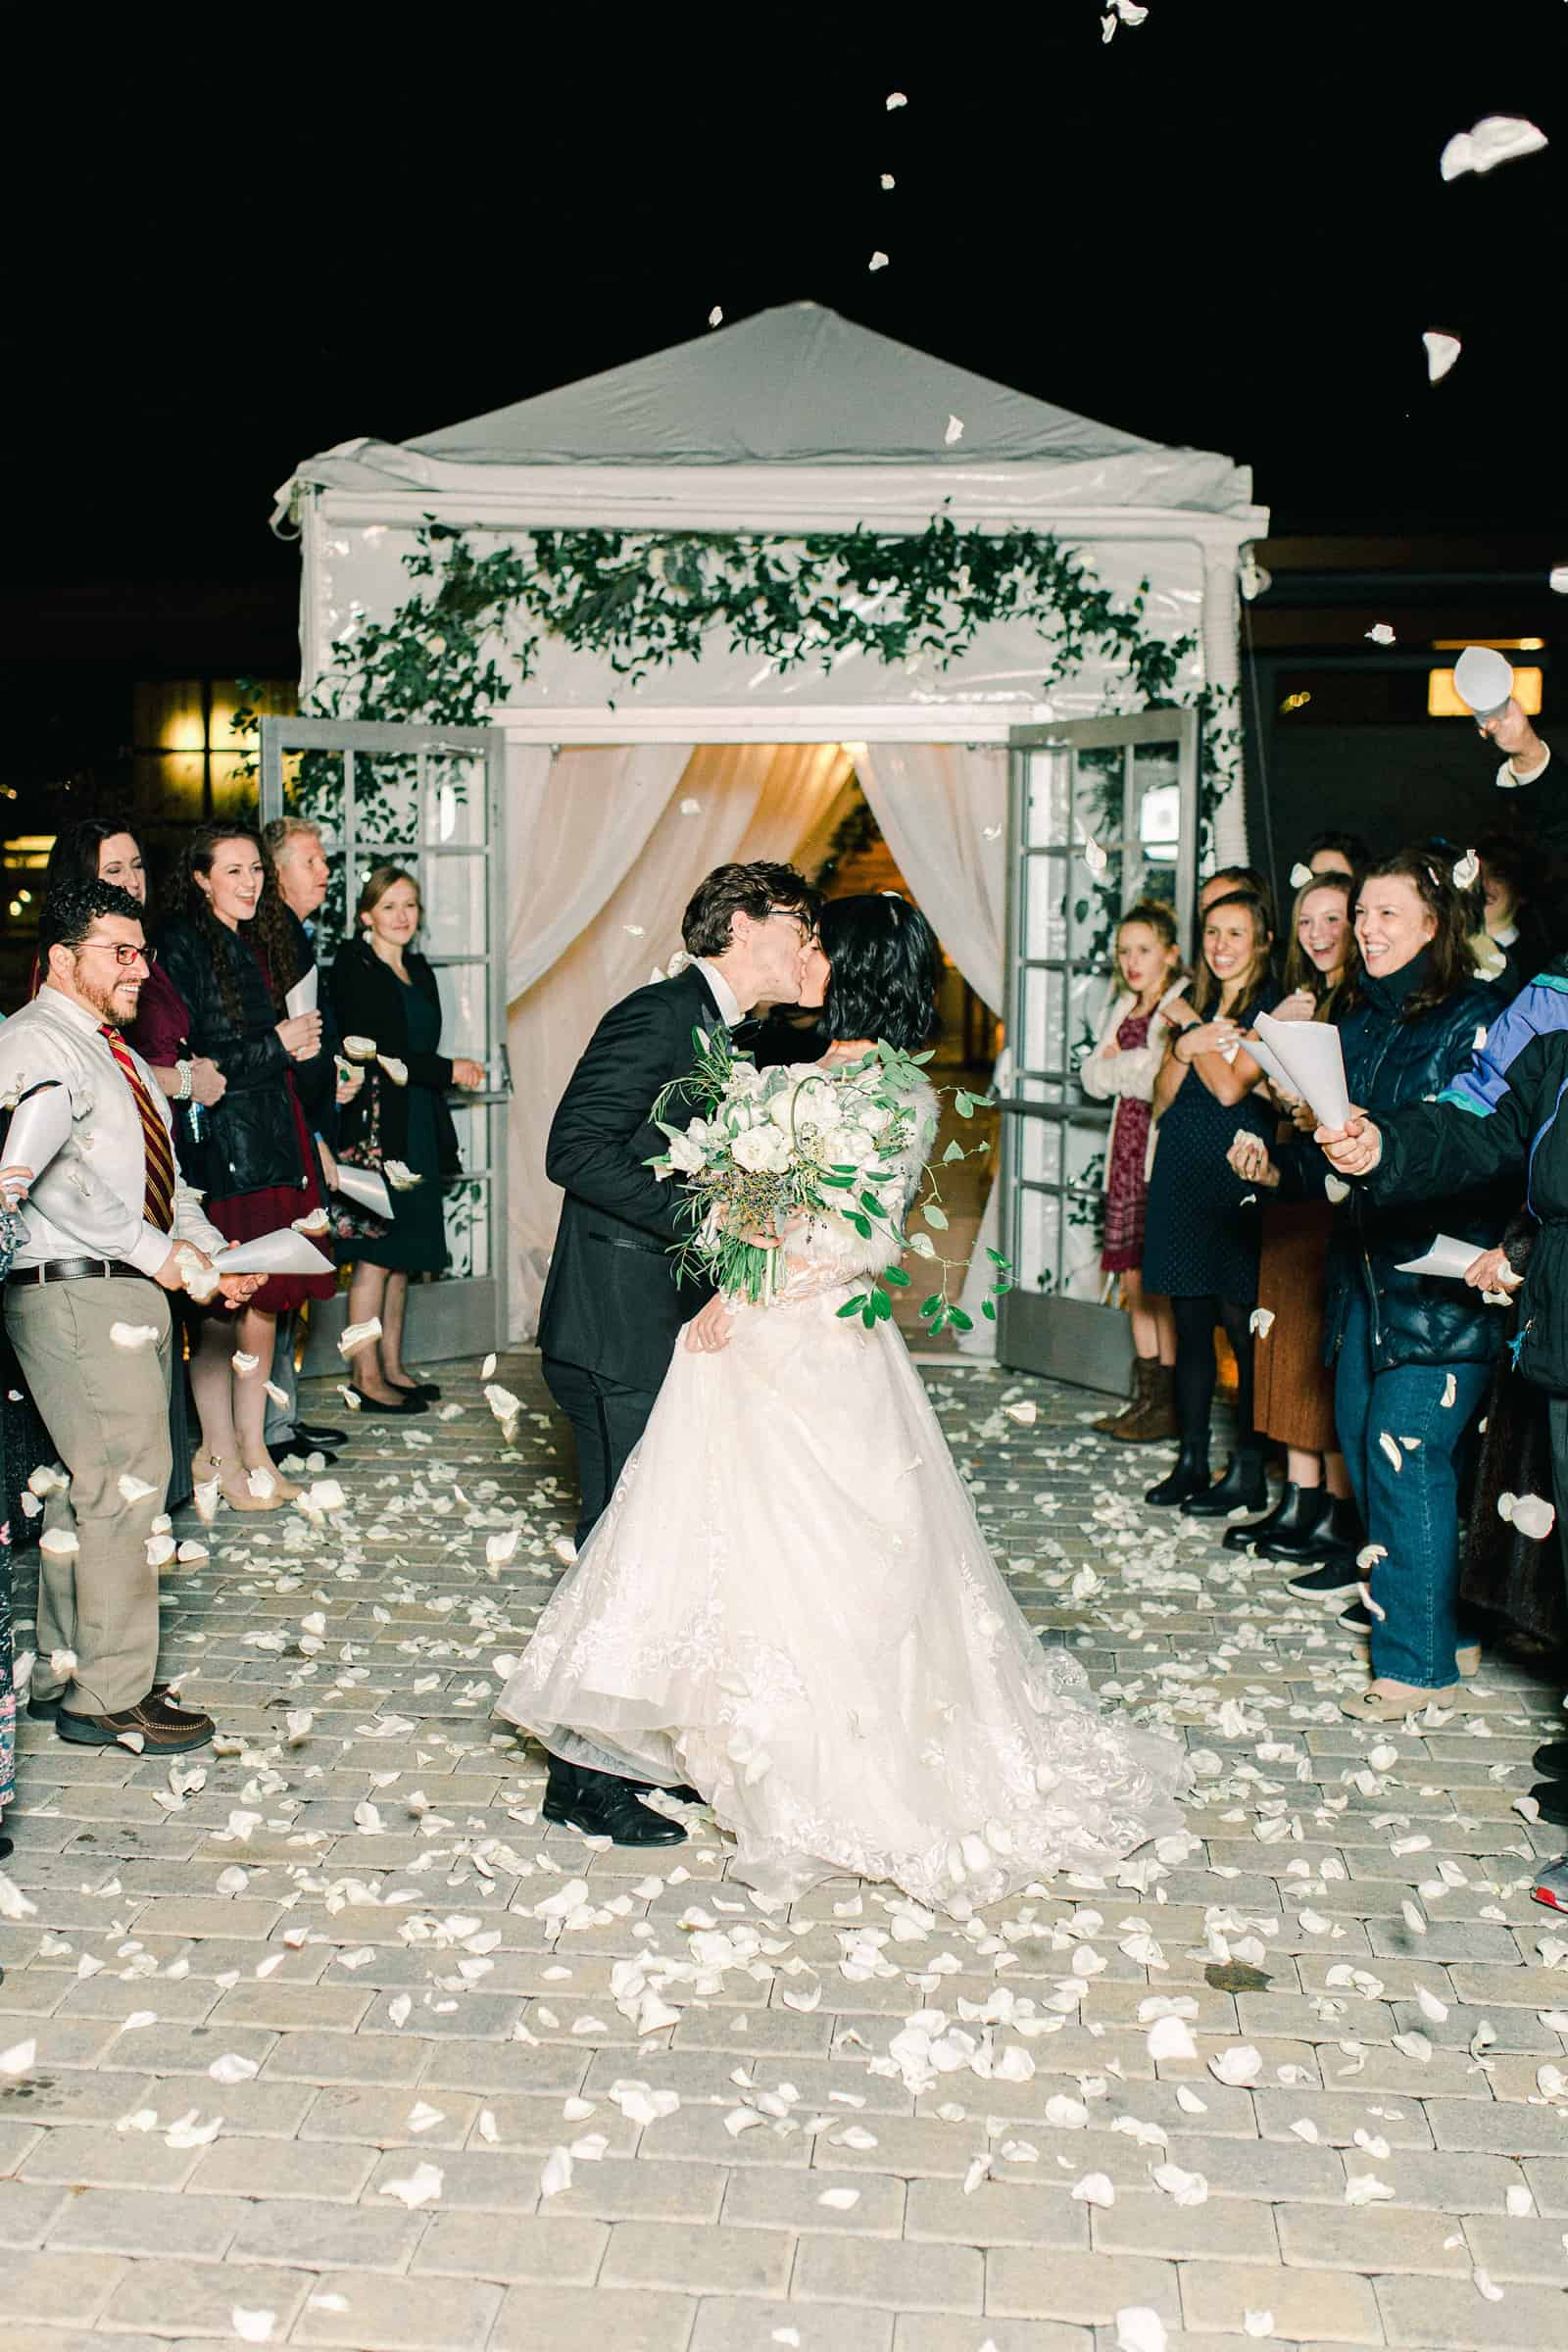 Winter wedding reception, bride and groom kiss during exit, grand send off with rose petals